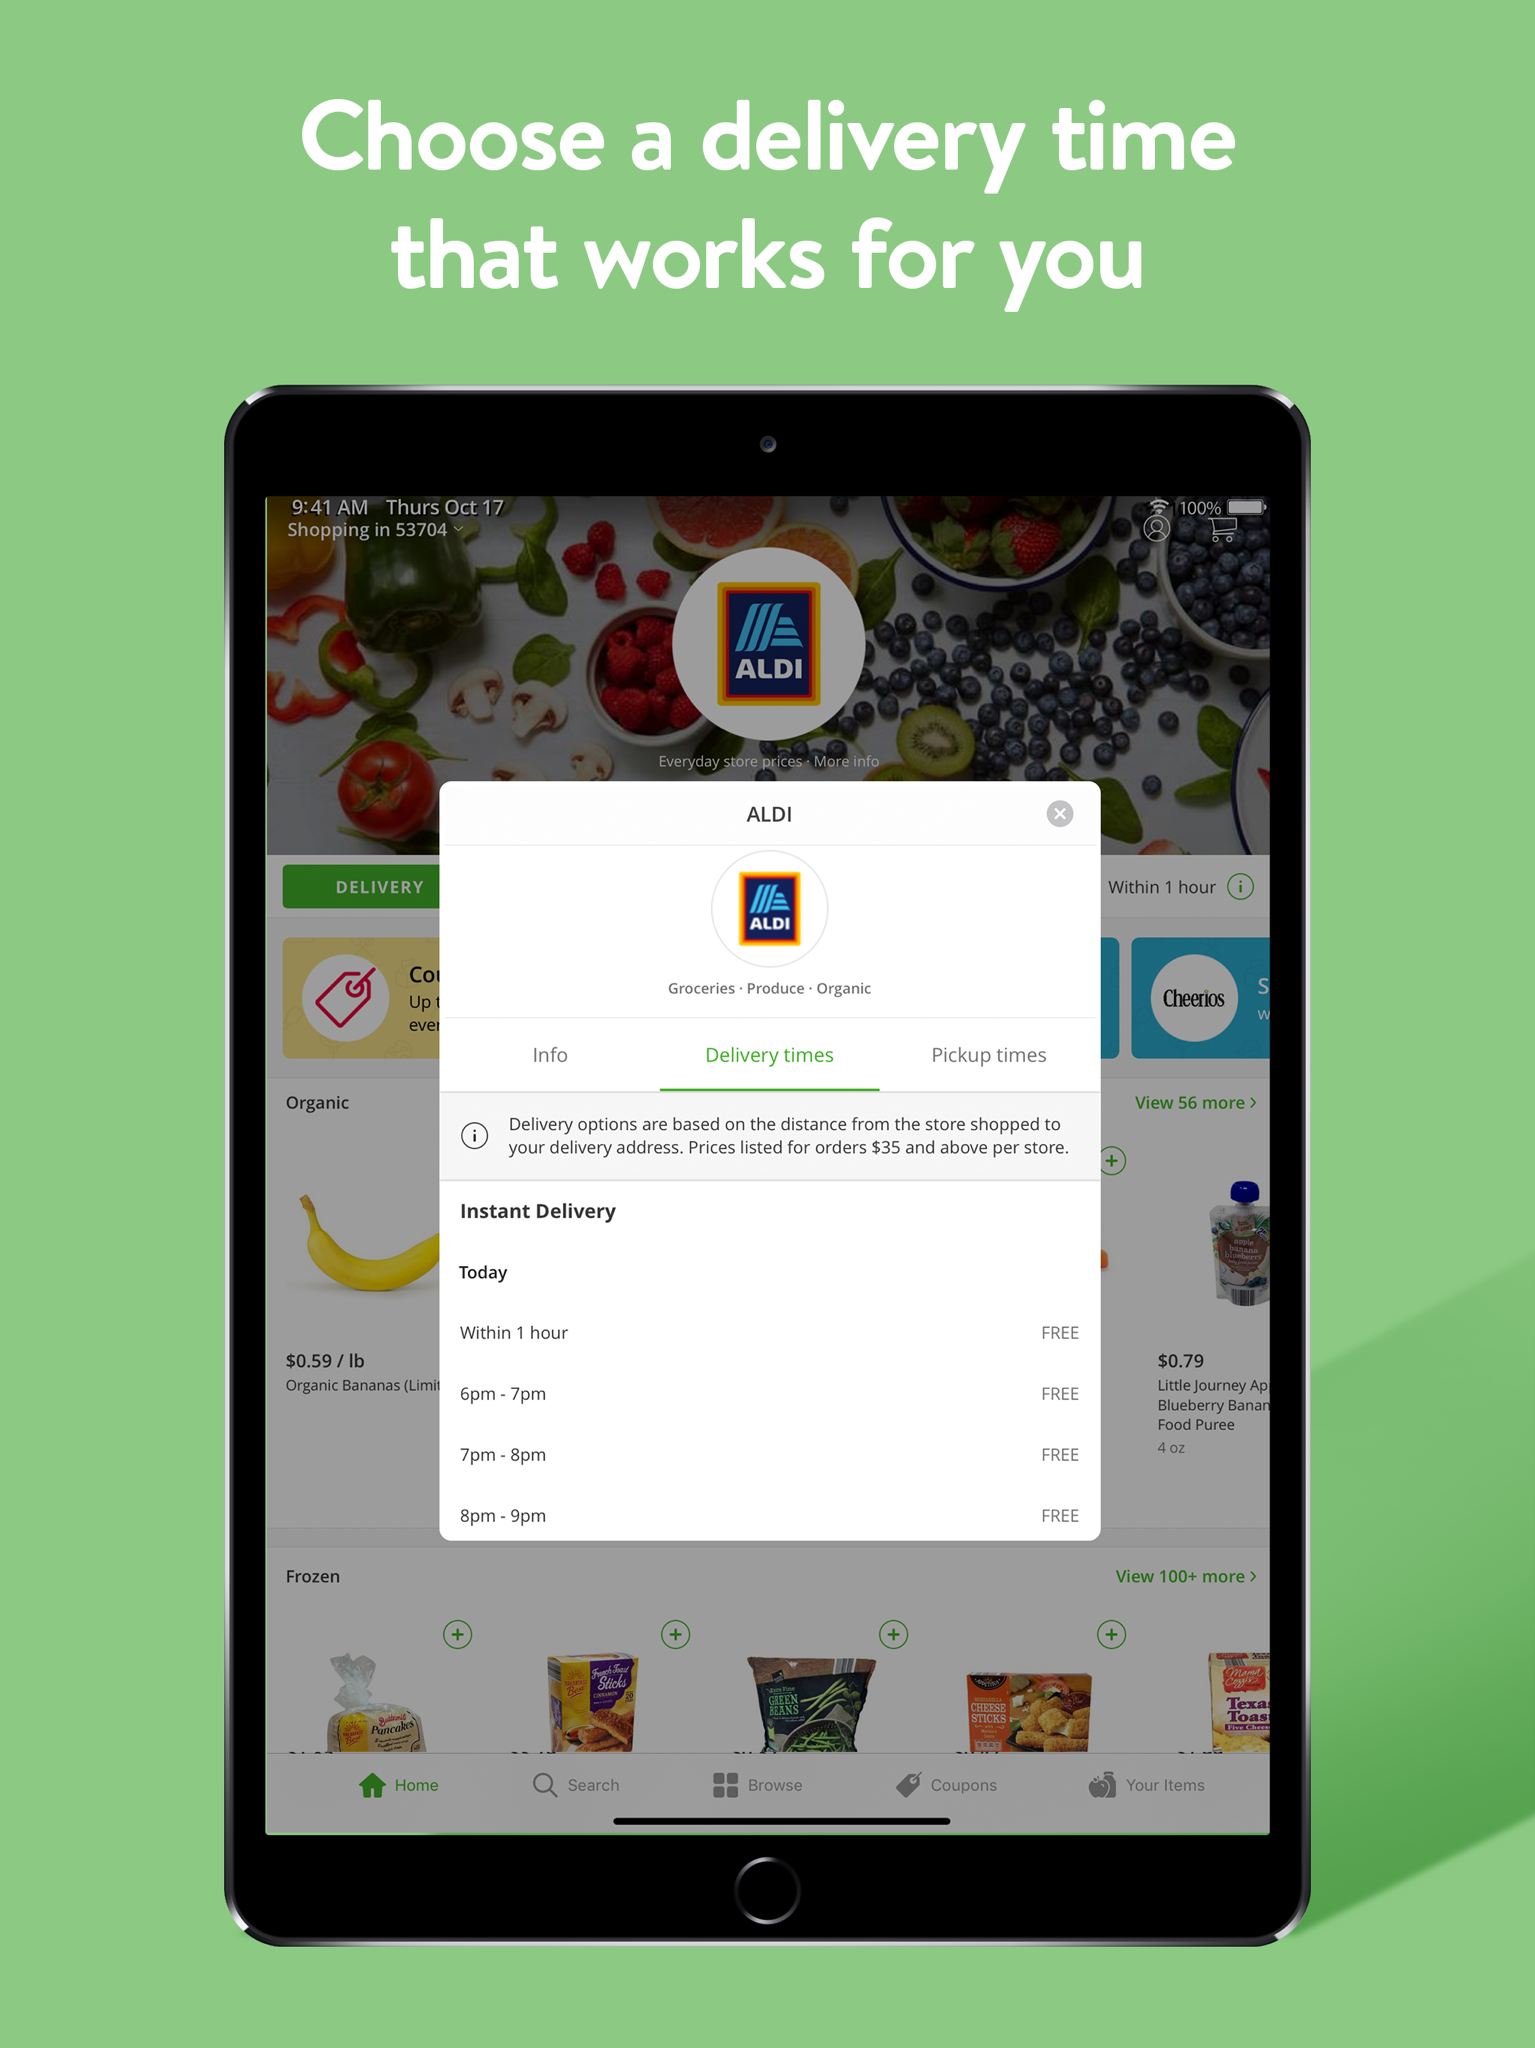 Instacart Revenue Download Estimates Apple App Store Us - make roblox at aldis